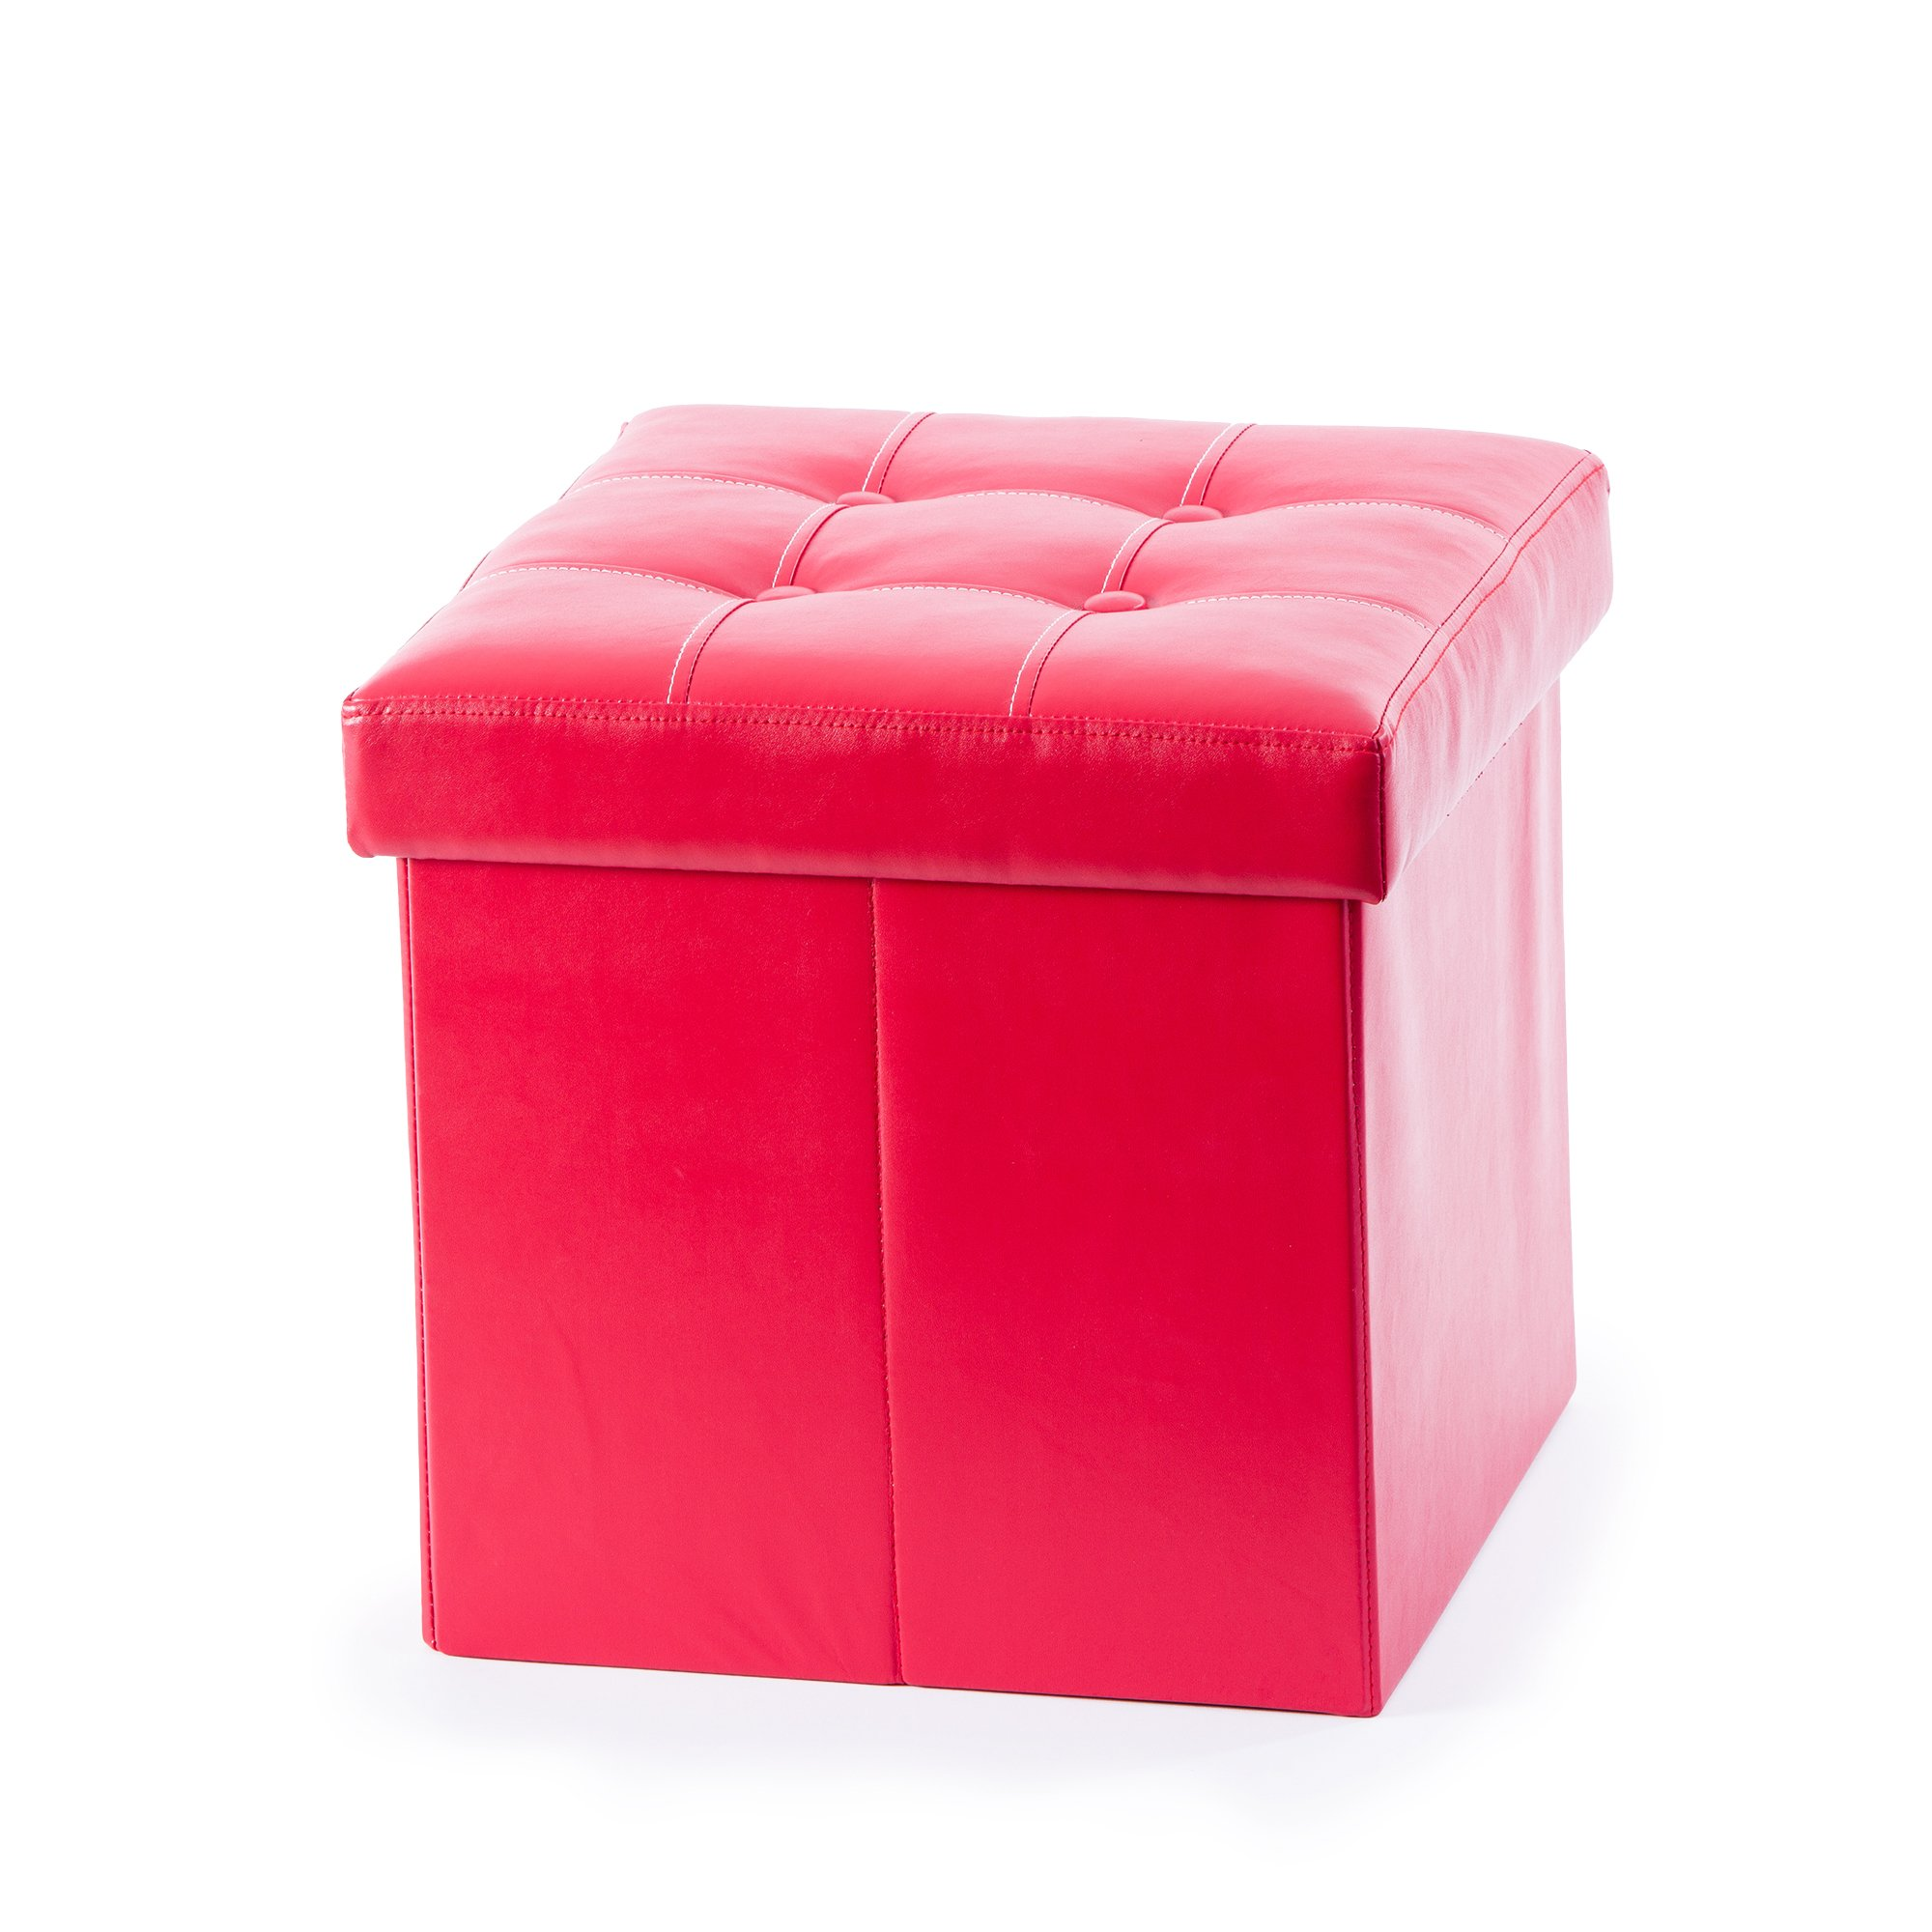 Guidecraft Storage Ottoman Red - Chest with Removable Top Cushion, Kids Seat and Foot Rest Stool Toy Box, Children's Furniture